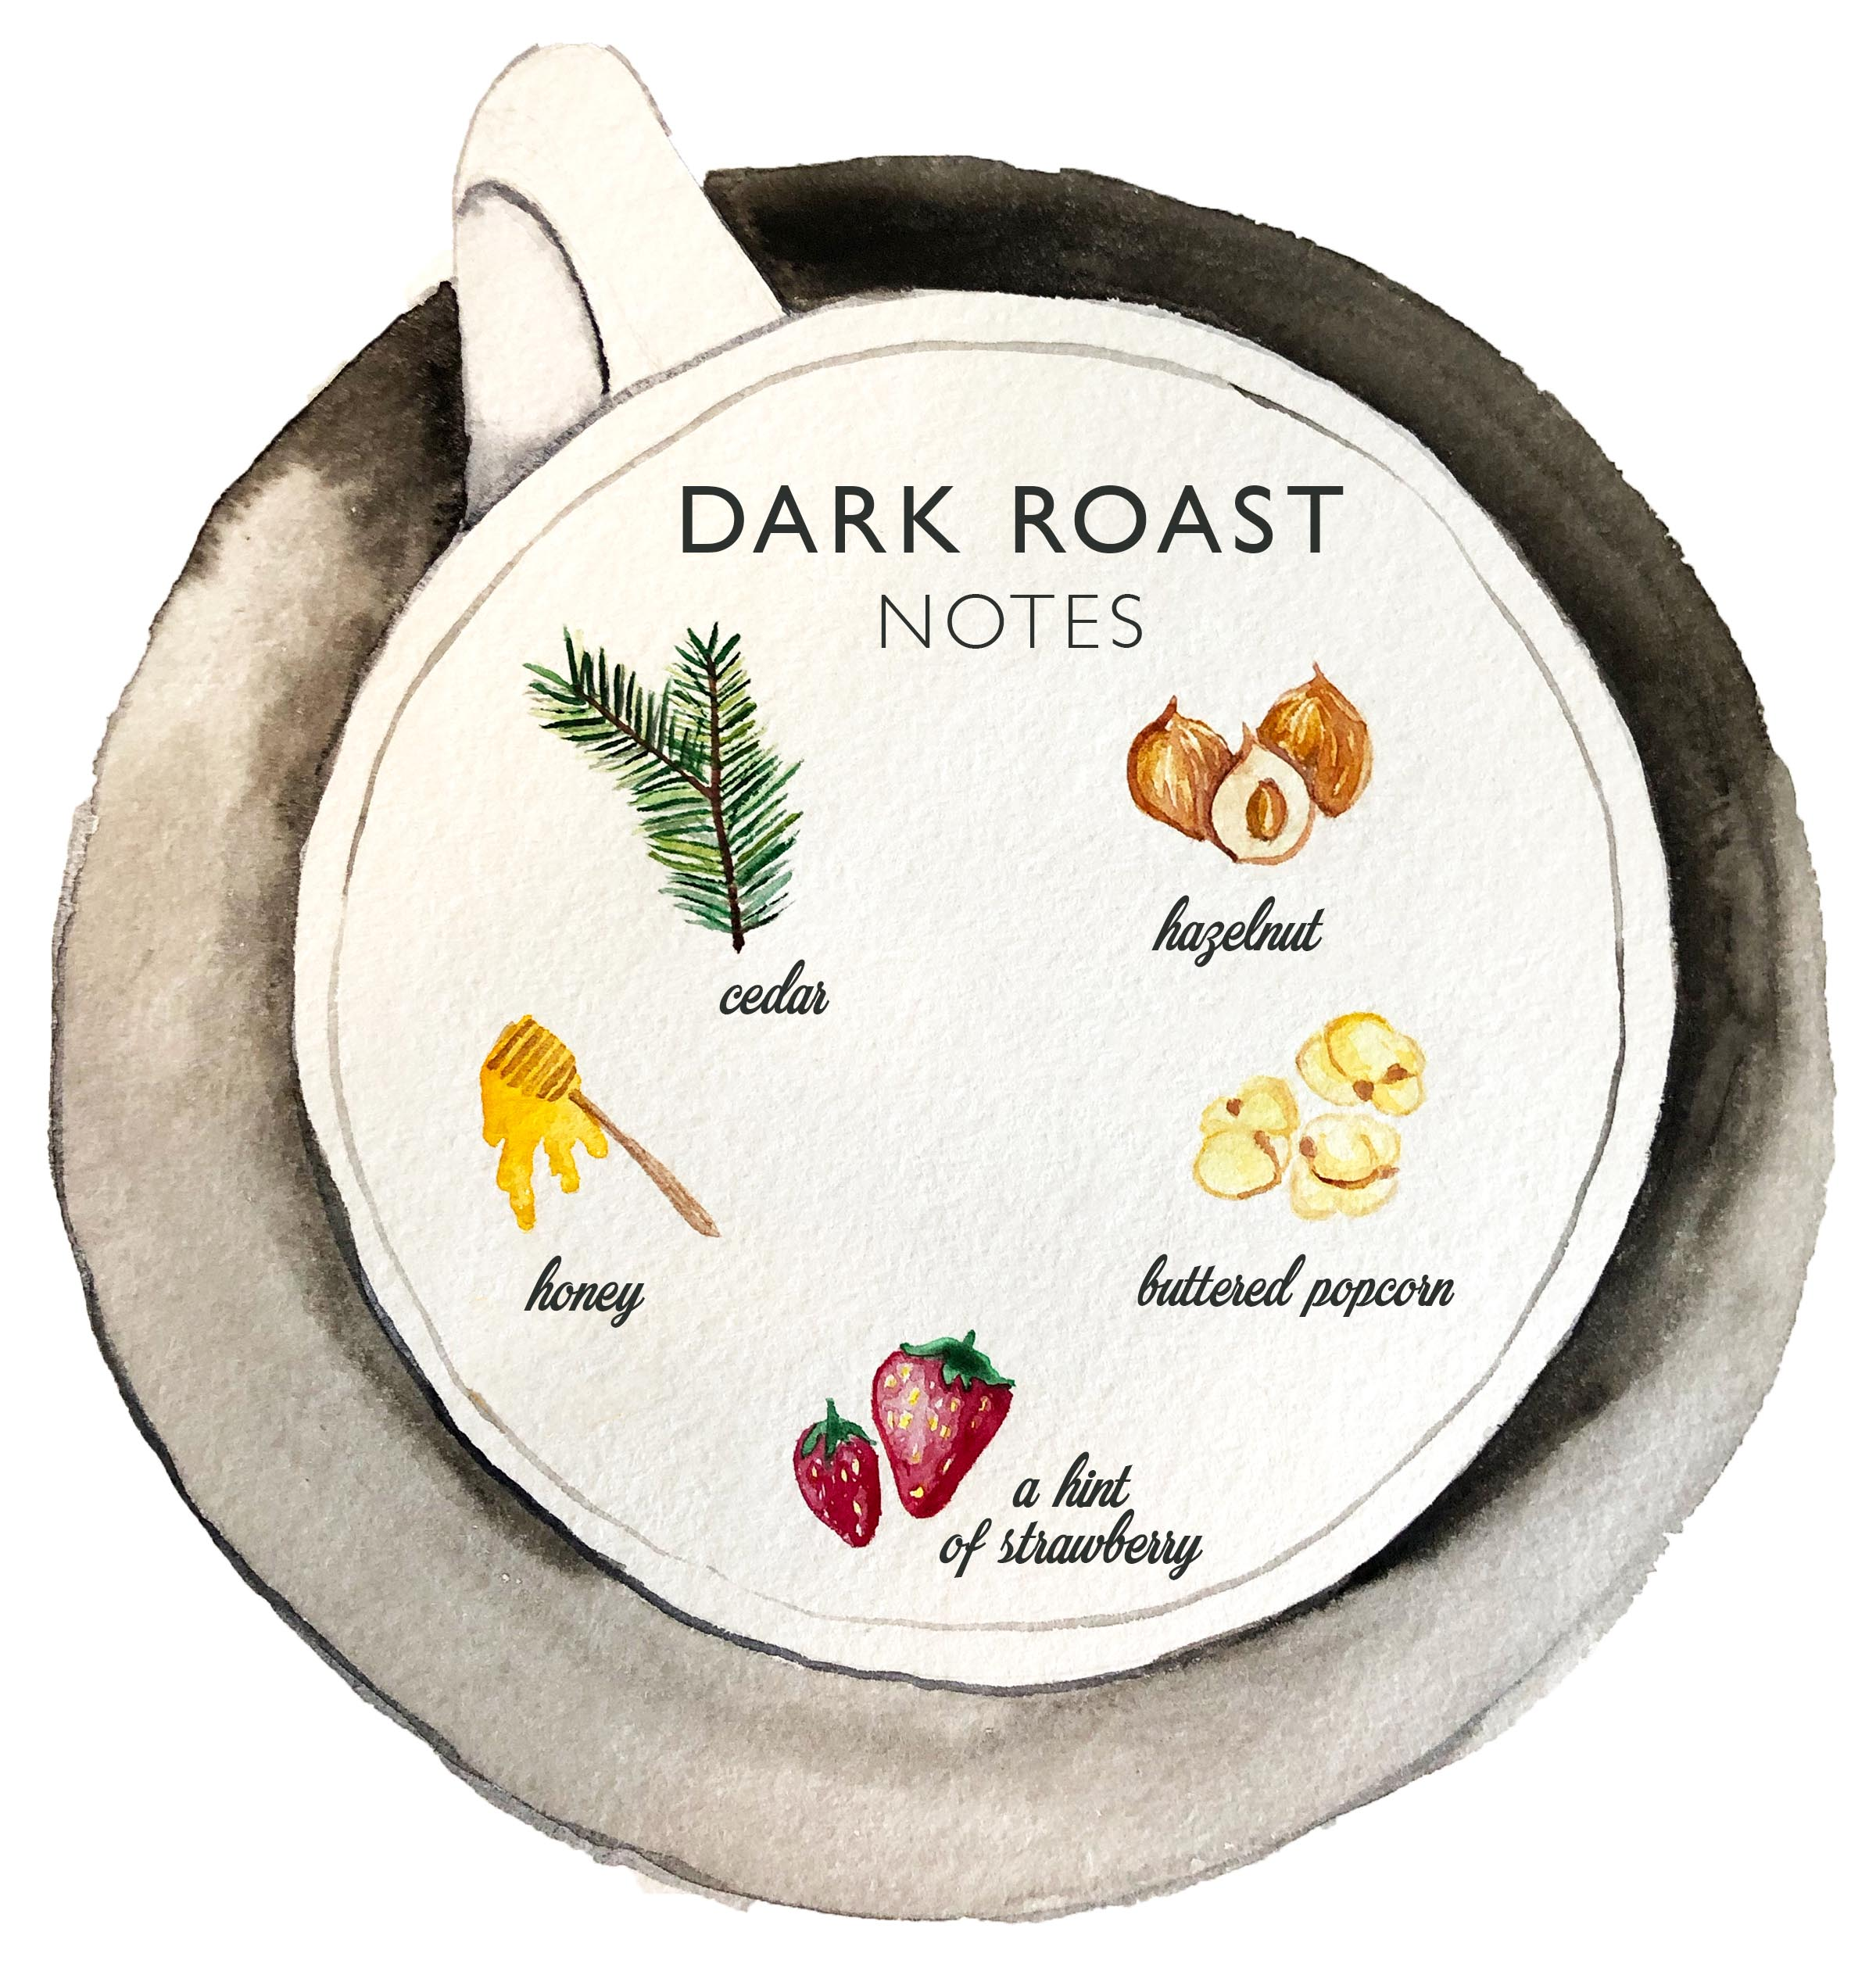 Kona Coffee & Tea's 2019 dark roast has notes of cherry, chocolate, buttery maple, raw almond, peaches, and clove. ART: Dayva Keolanui has notes of cedar, hazelnut, honey, buttered popcorn, and a hint of strawberry. ART: Dayva Keolanui